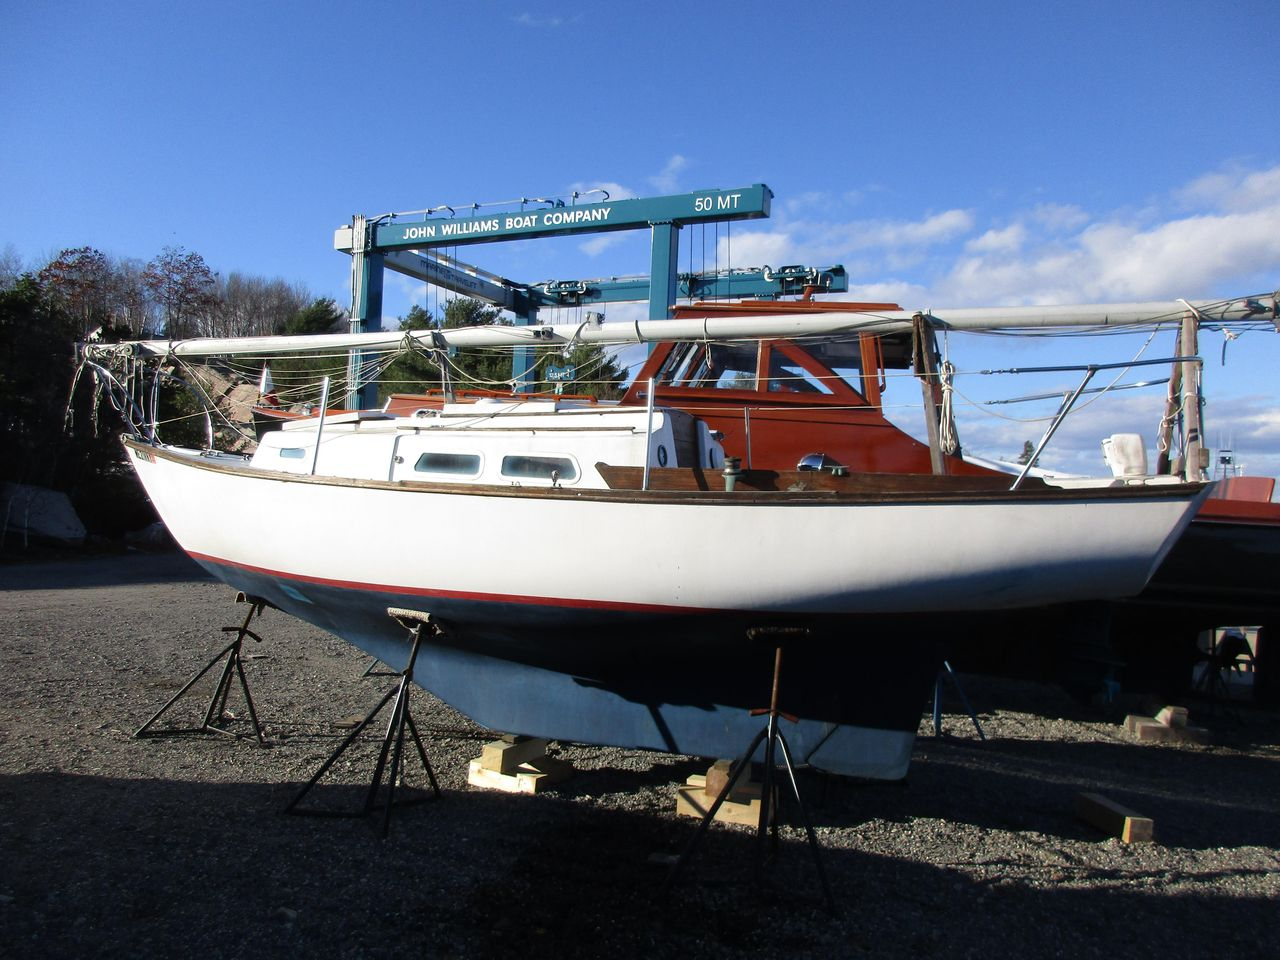 1974 Used Cape Dory 25 Sloop Sailboat For Sale - $6,950 - Mount